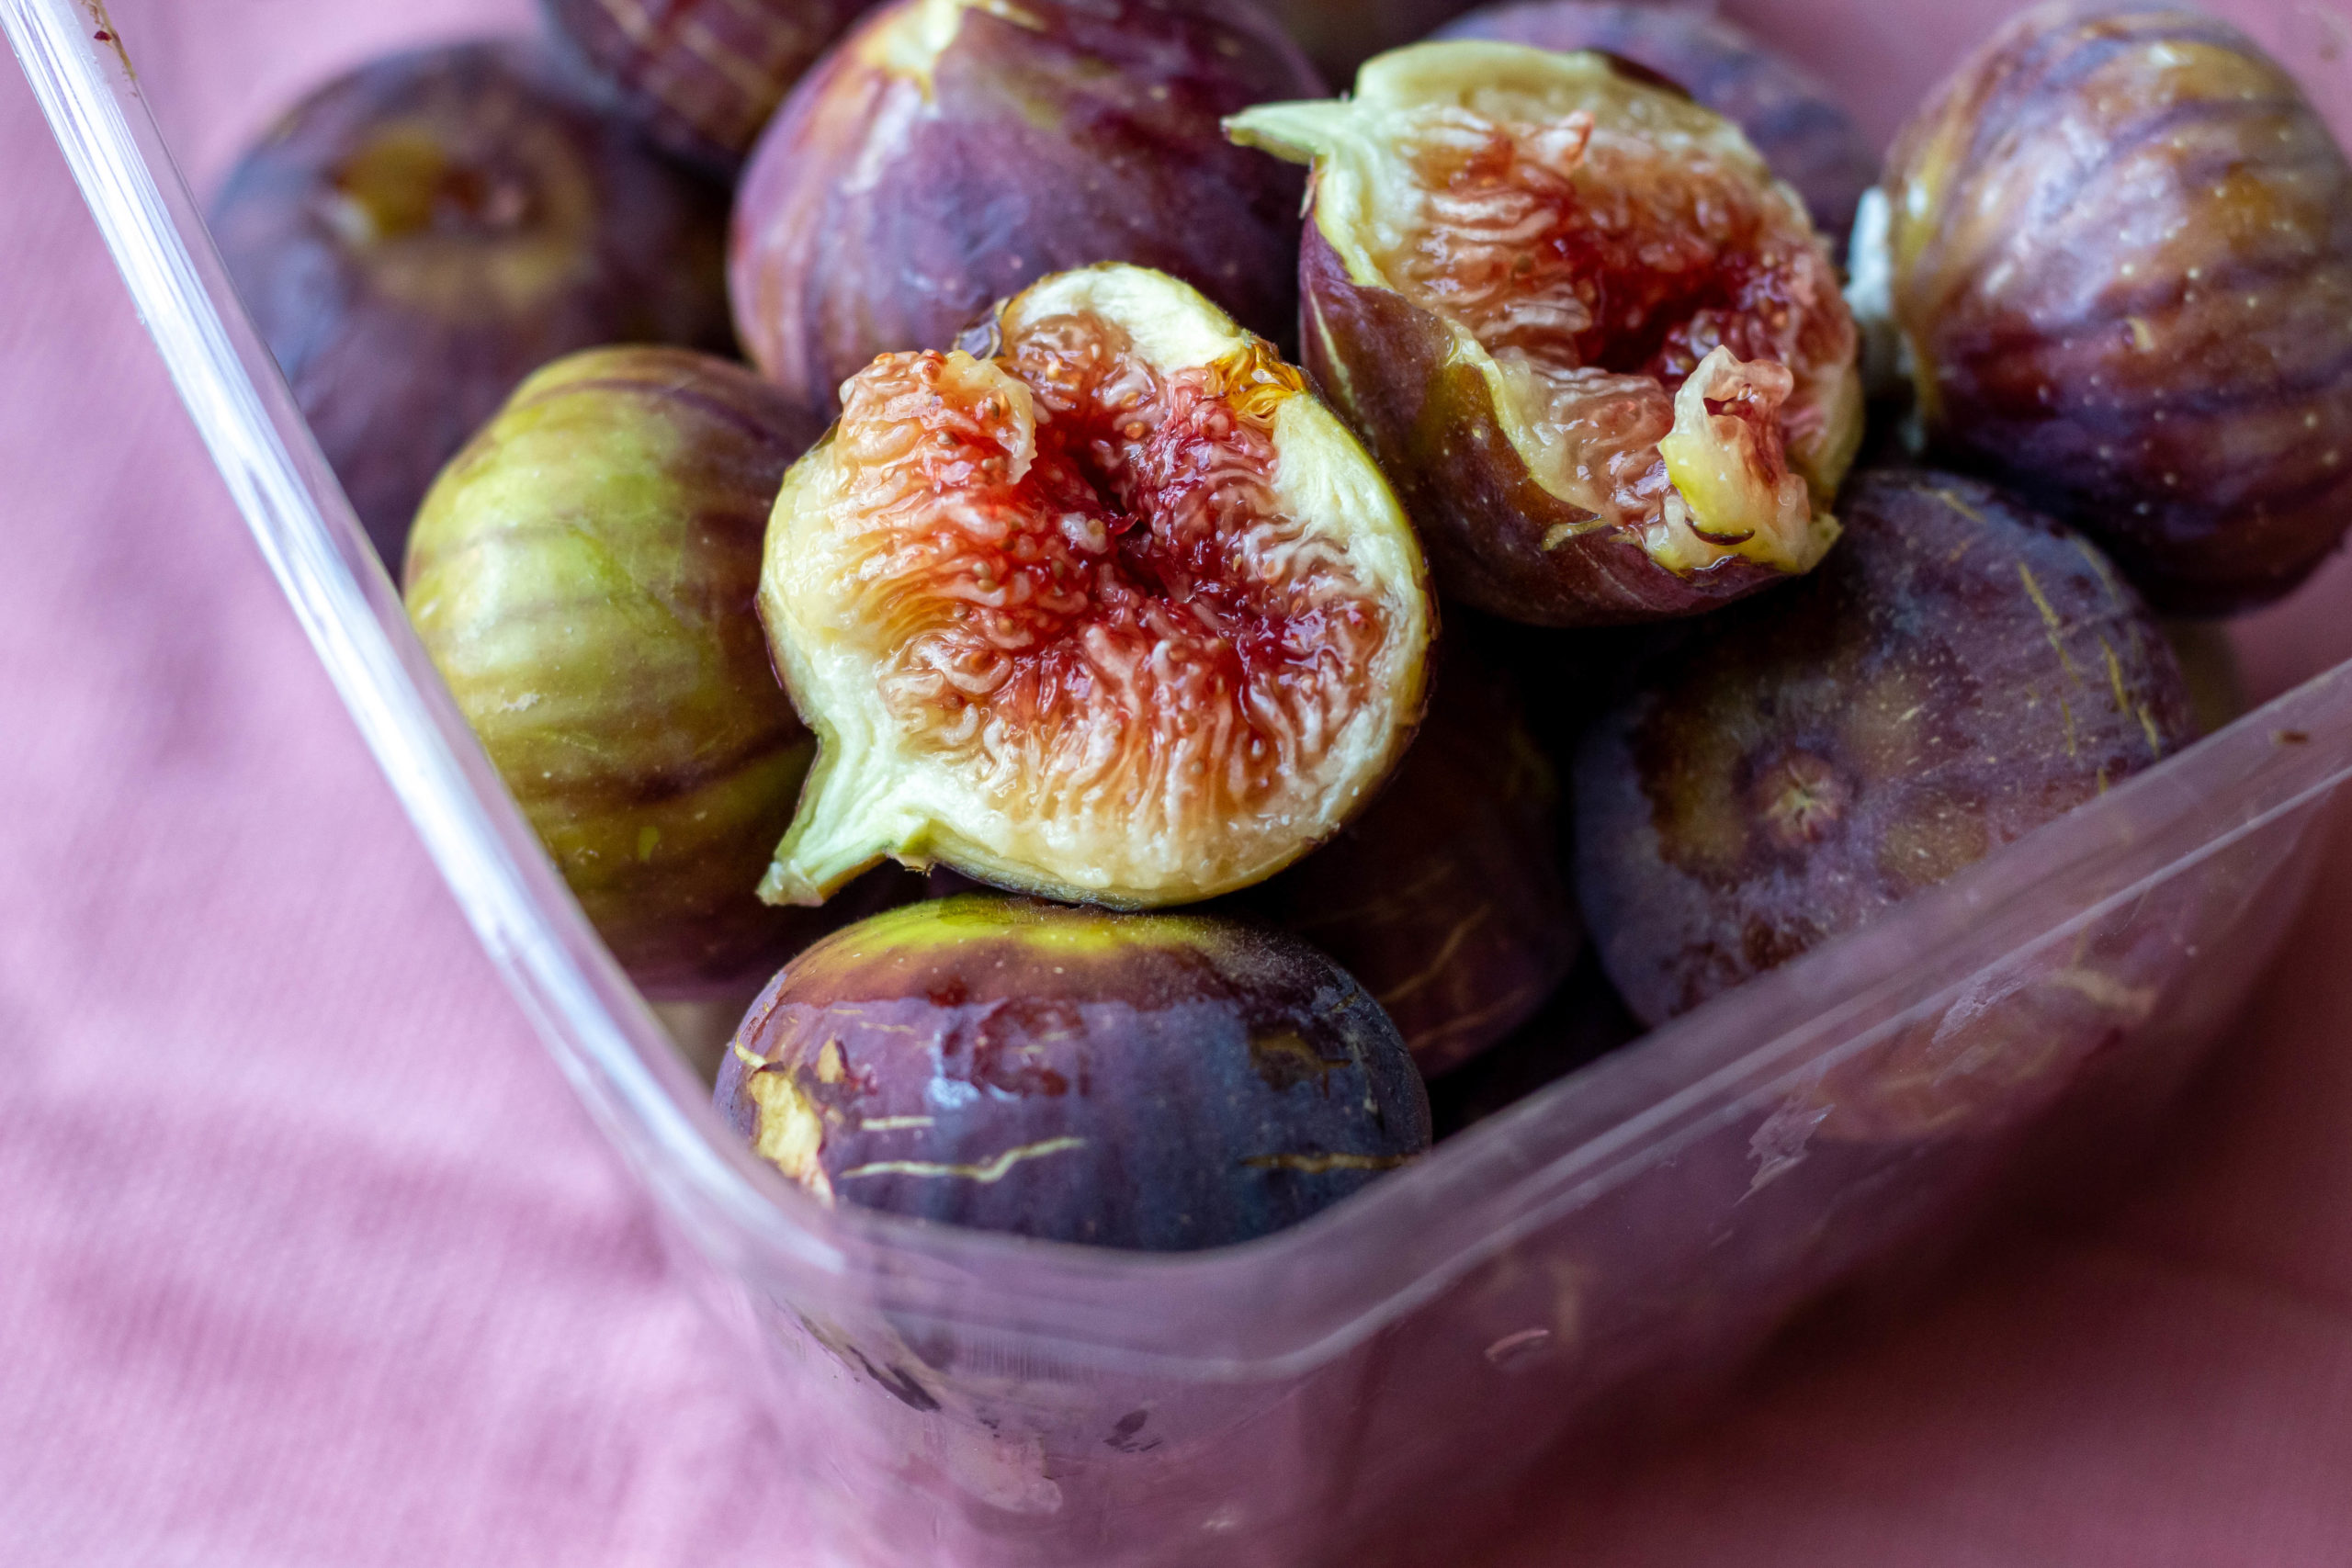 Figs in a plastic container on a purple tablecloth